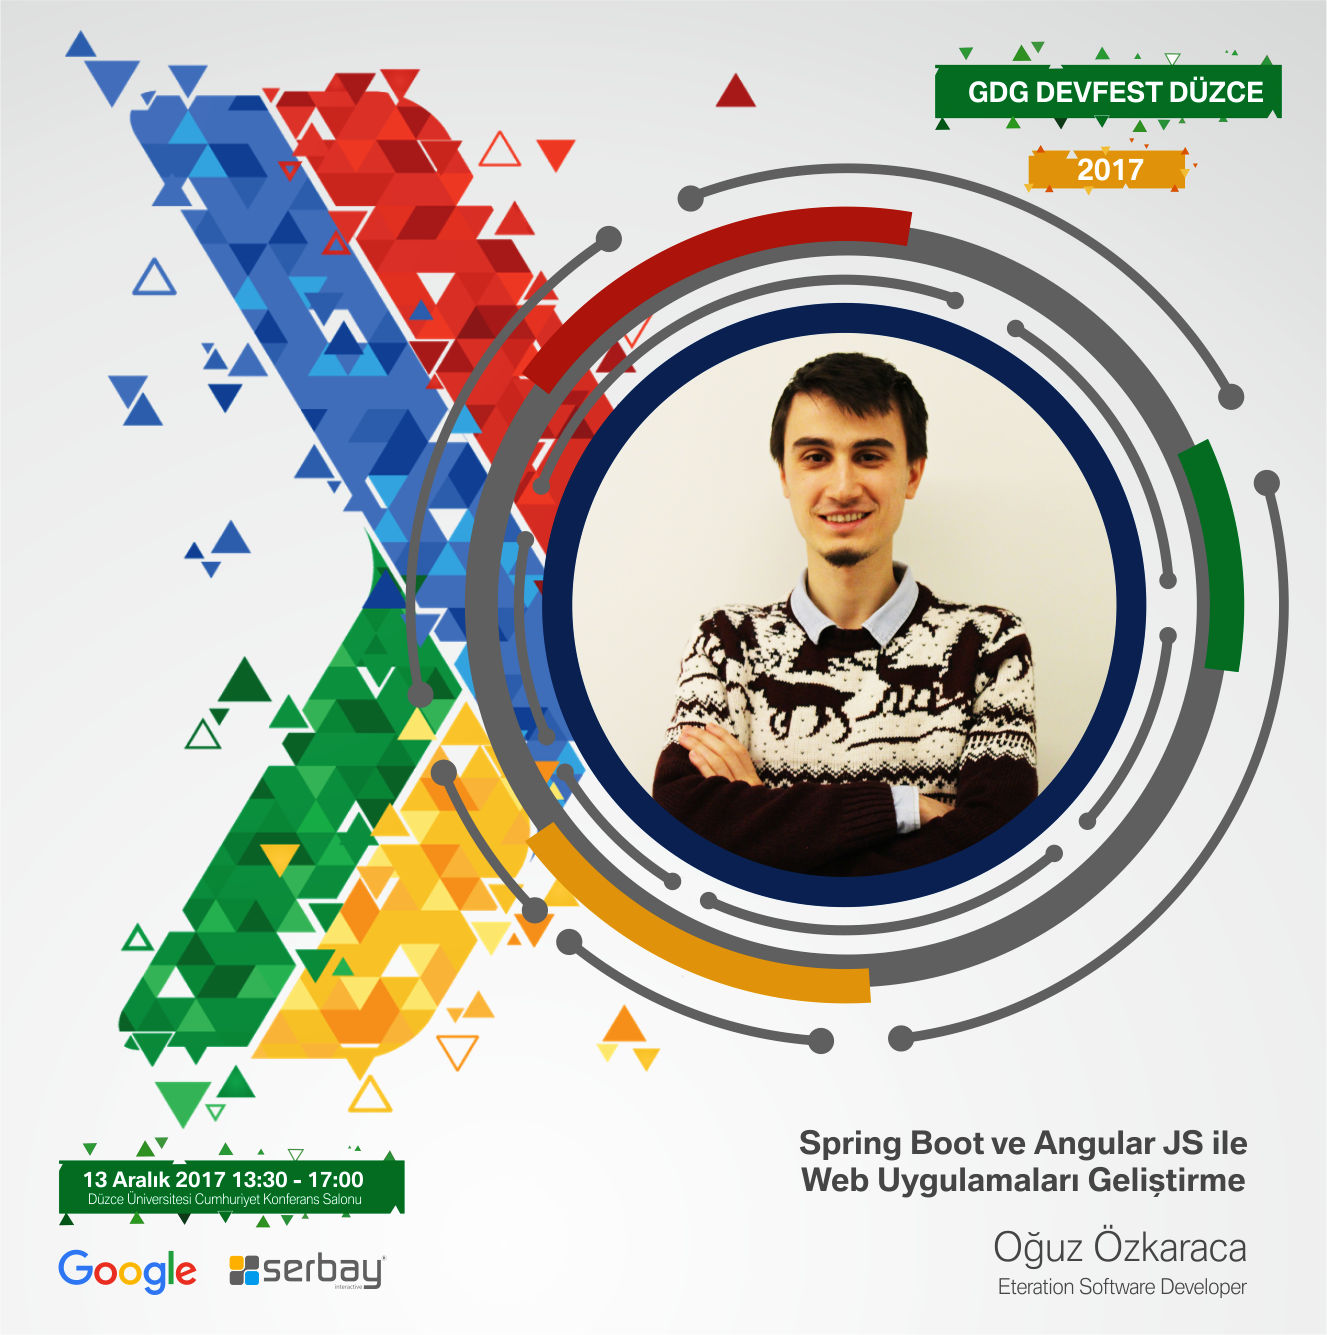 Eteration Software Developer Oğuz Özkaraca, Spring Boot ve Angular JS ile Web Uygulamaları Geliştirme konusunda sunum yapacaktır.